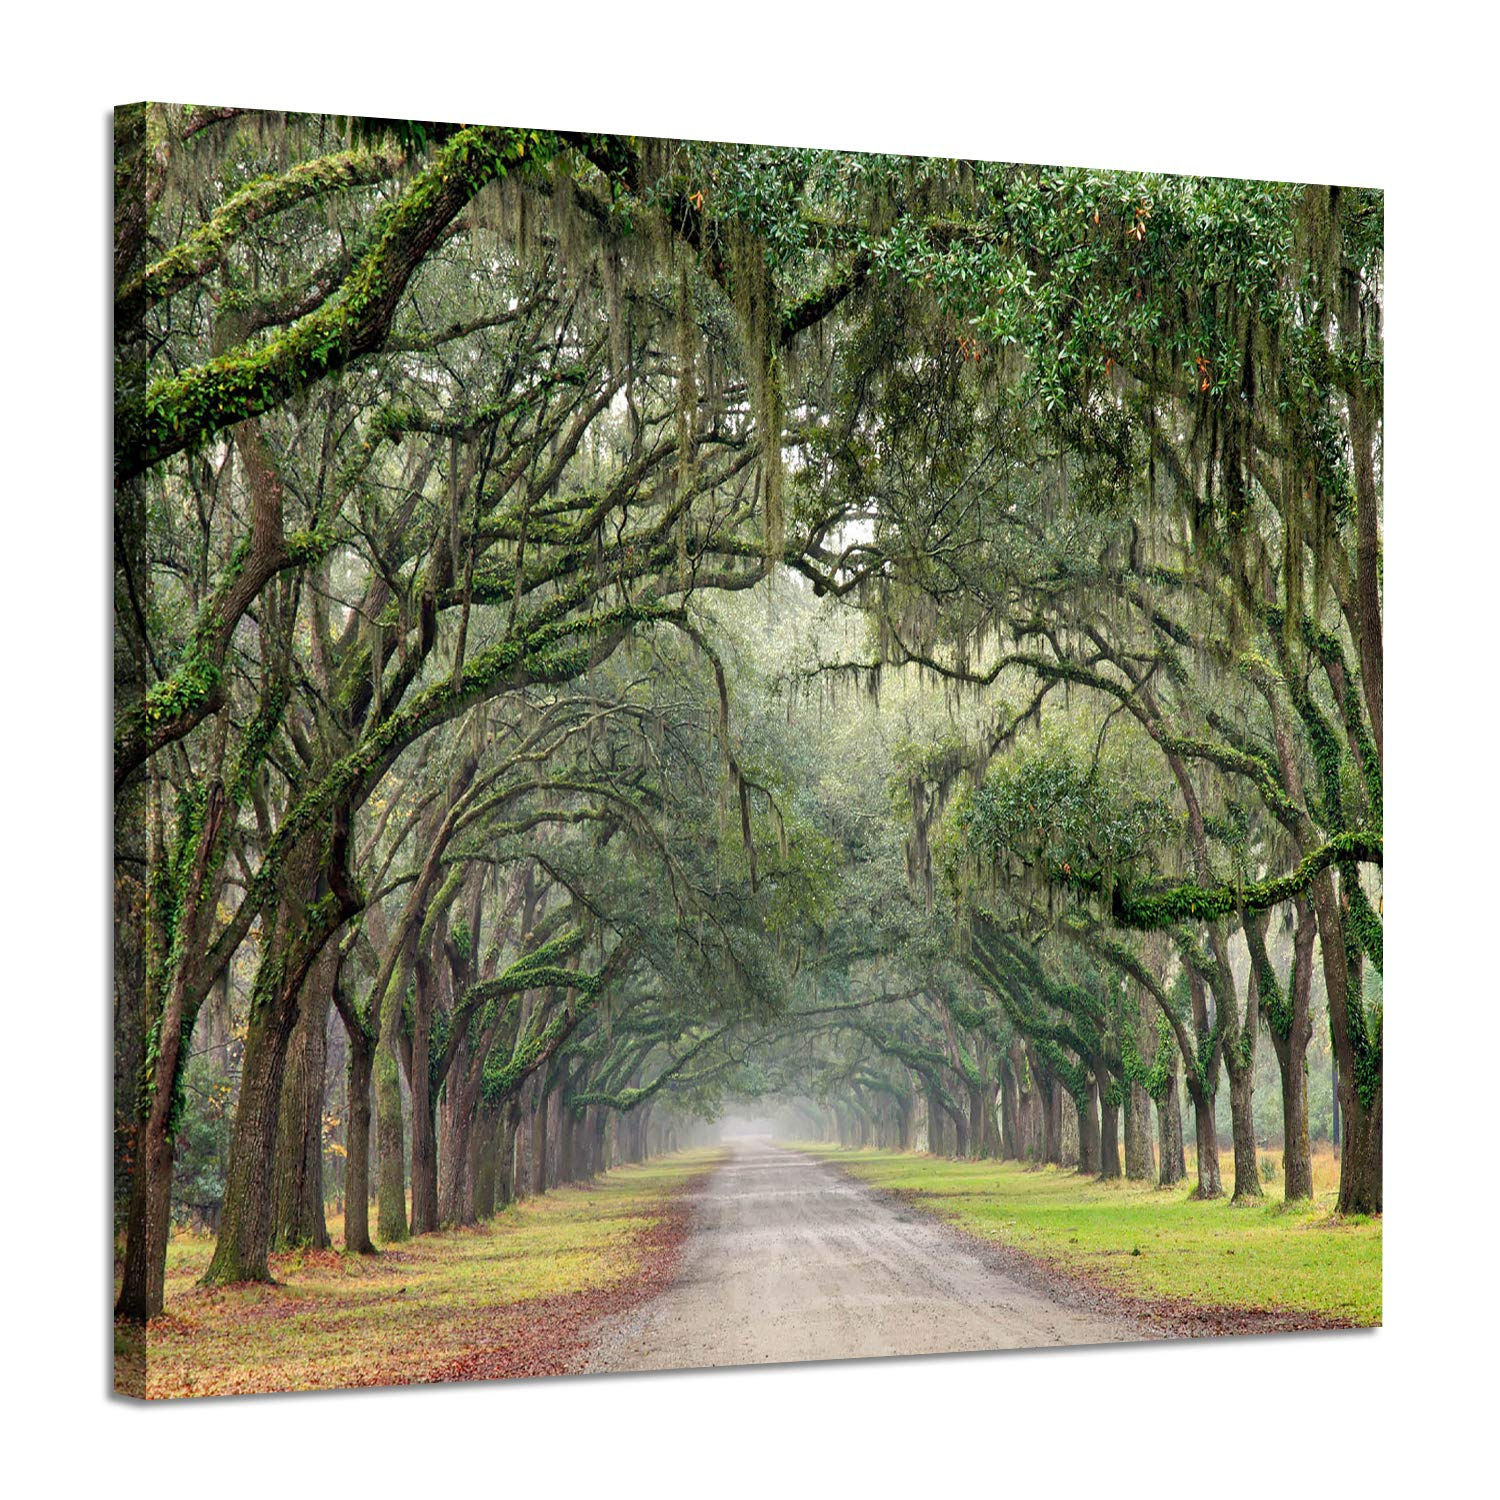 "Hardy Gallery Landscape Artwork Pictures Canvas Prints: Spanish Moss Covered Green Oak Trees on Forest Path in Fall Photographic Image for Wall Arts (24"" x 18"", Green)"